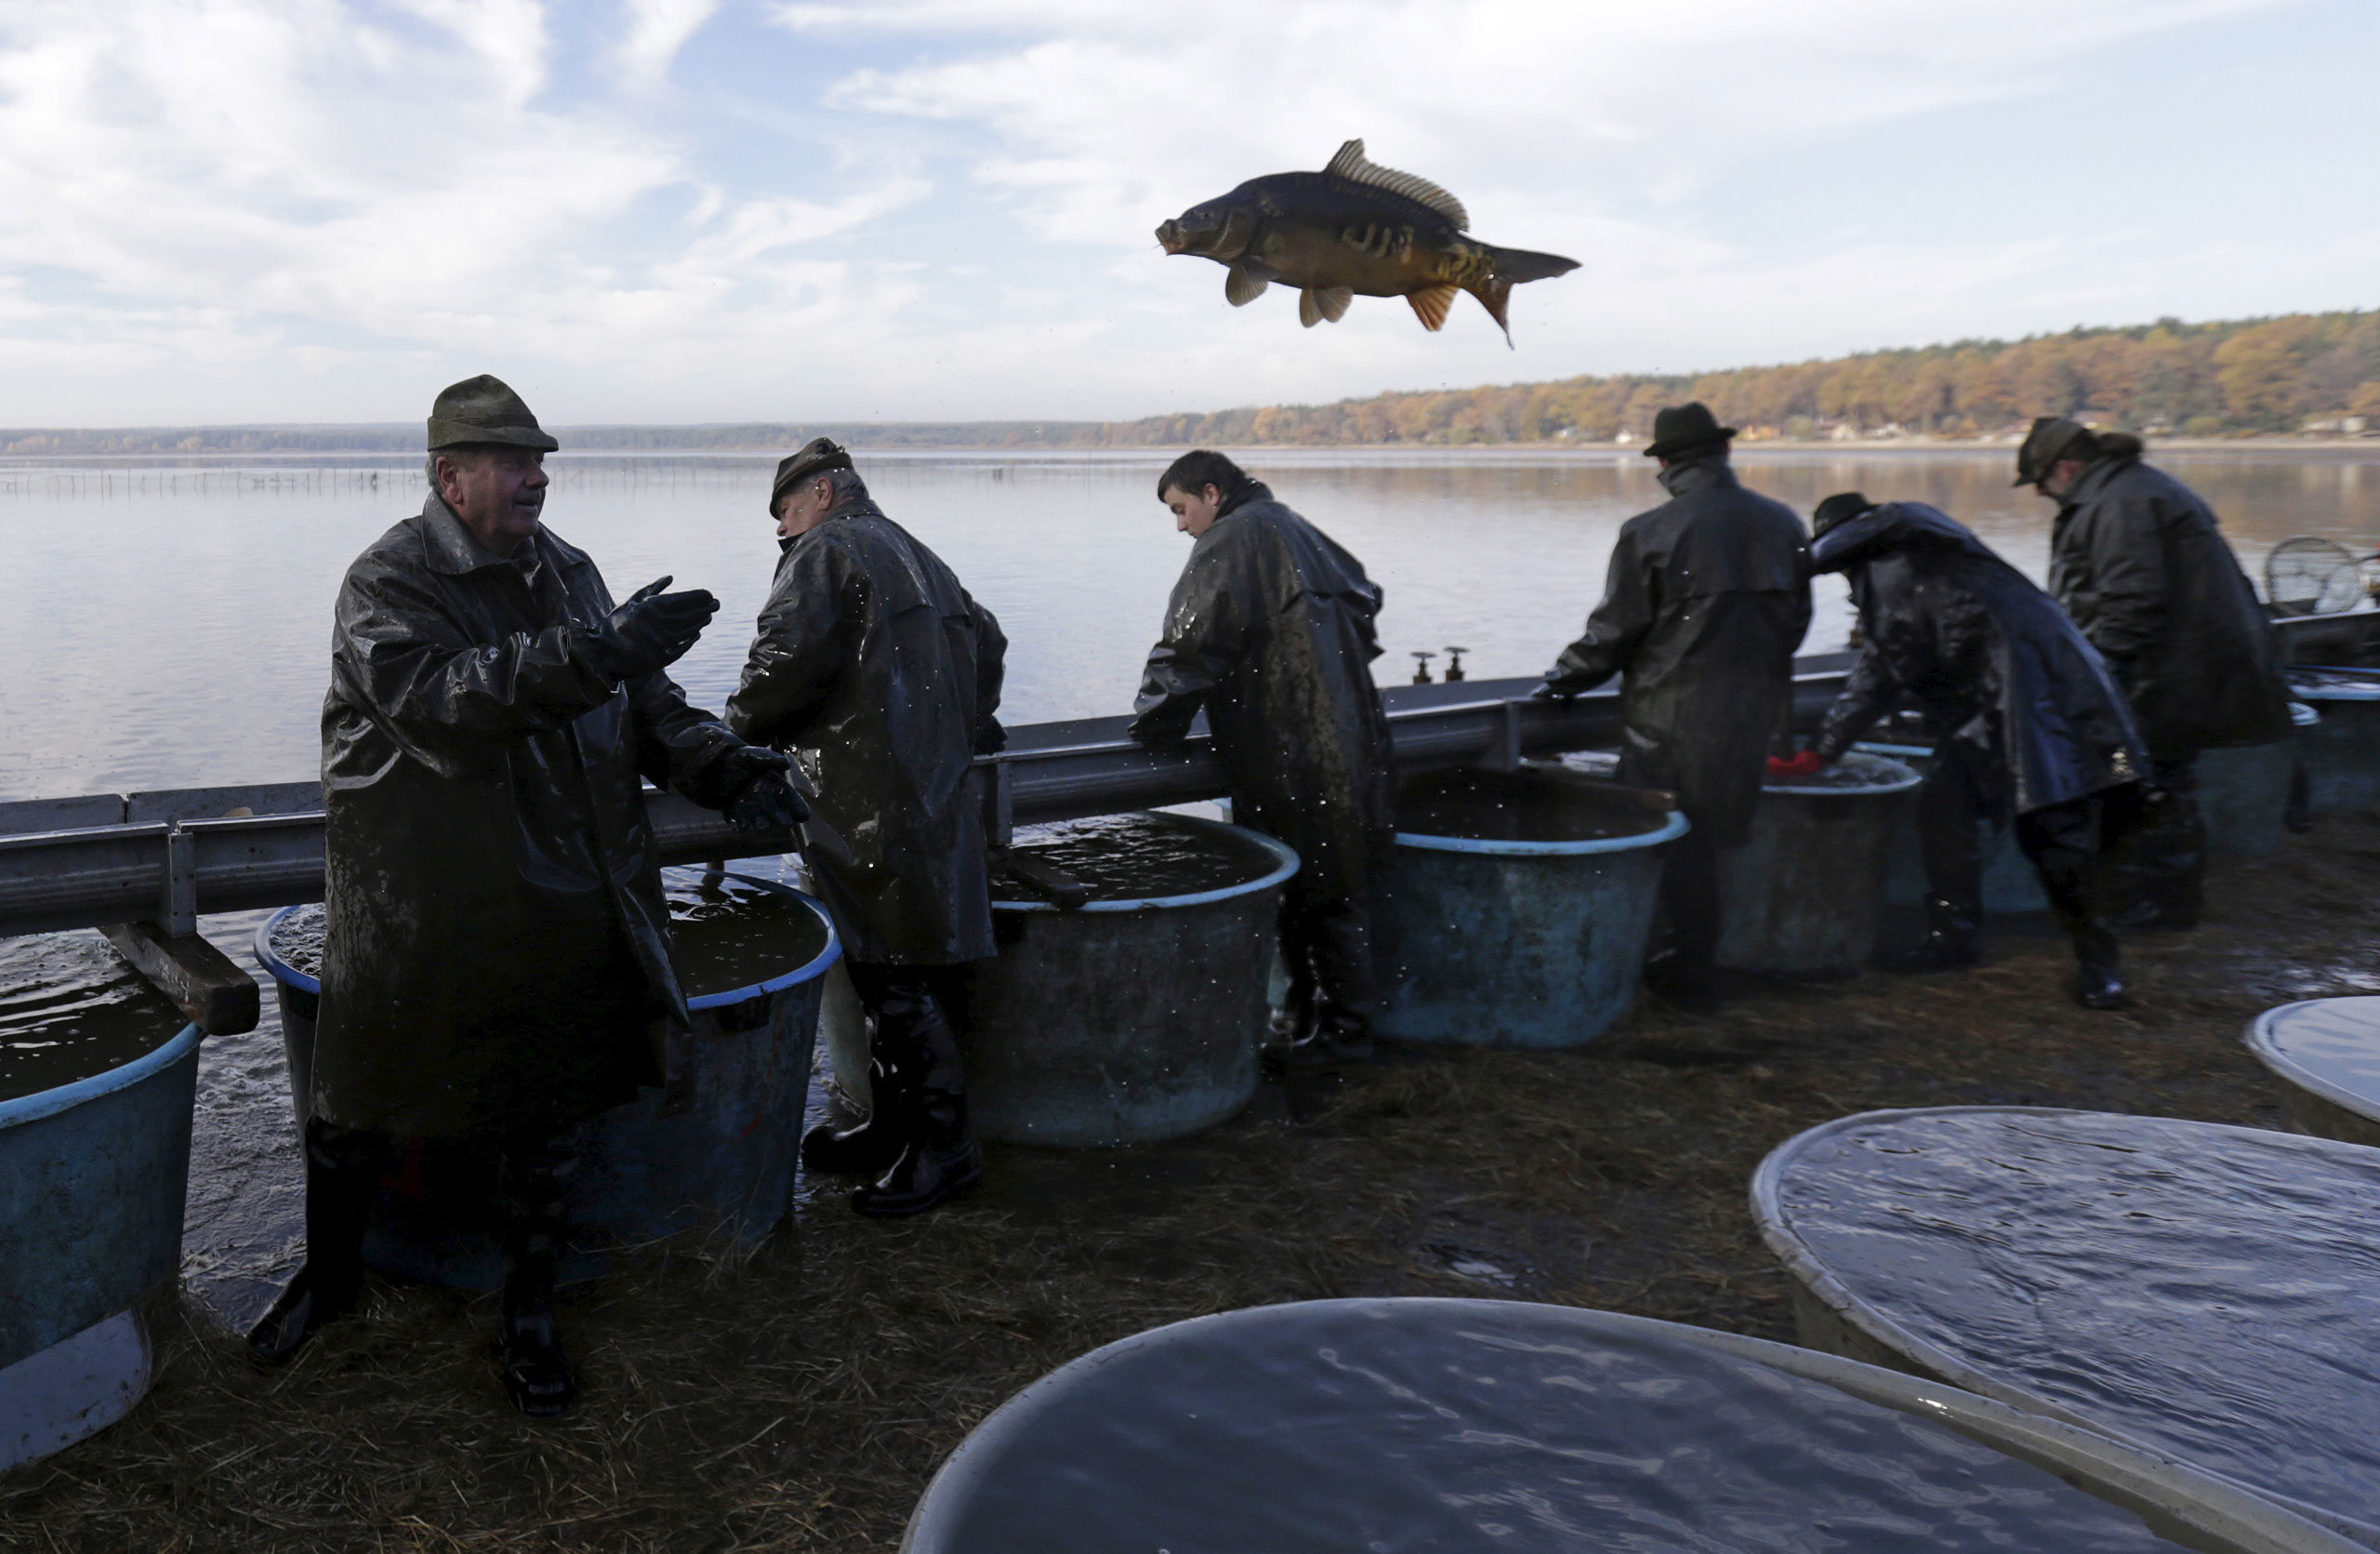 A fisherman throws a fish during the traditional carp haul in the village of Smrzov, near the south Bohemian town of Trebon, Czech Republic, Nov. 2, 2015.